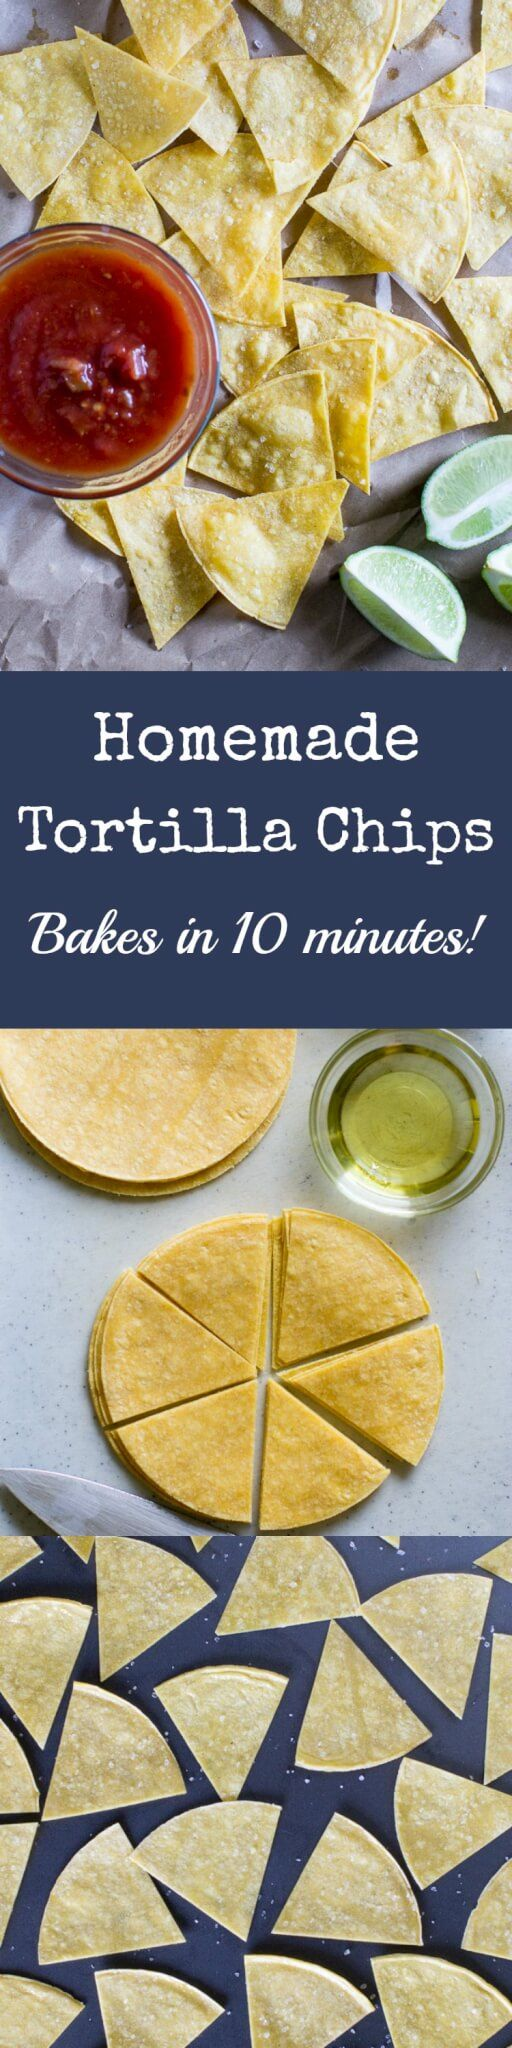 Bake your own Homemade Tortilla Chips in 10 minutes! Extra thin tortillas ensure crunchy snacks every time, perfect for salsa and guacamole. (Low Carb Muffins Cinnamon)